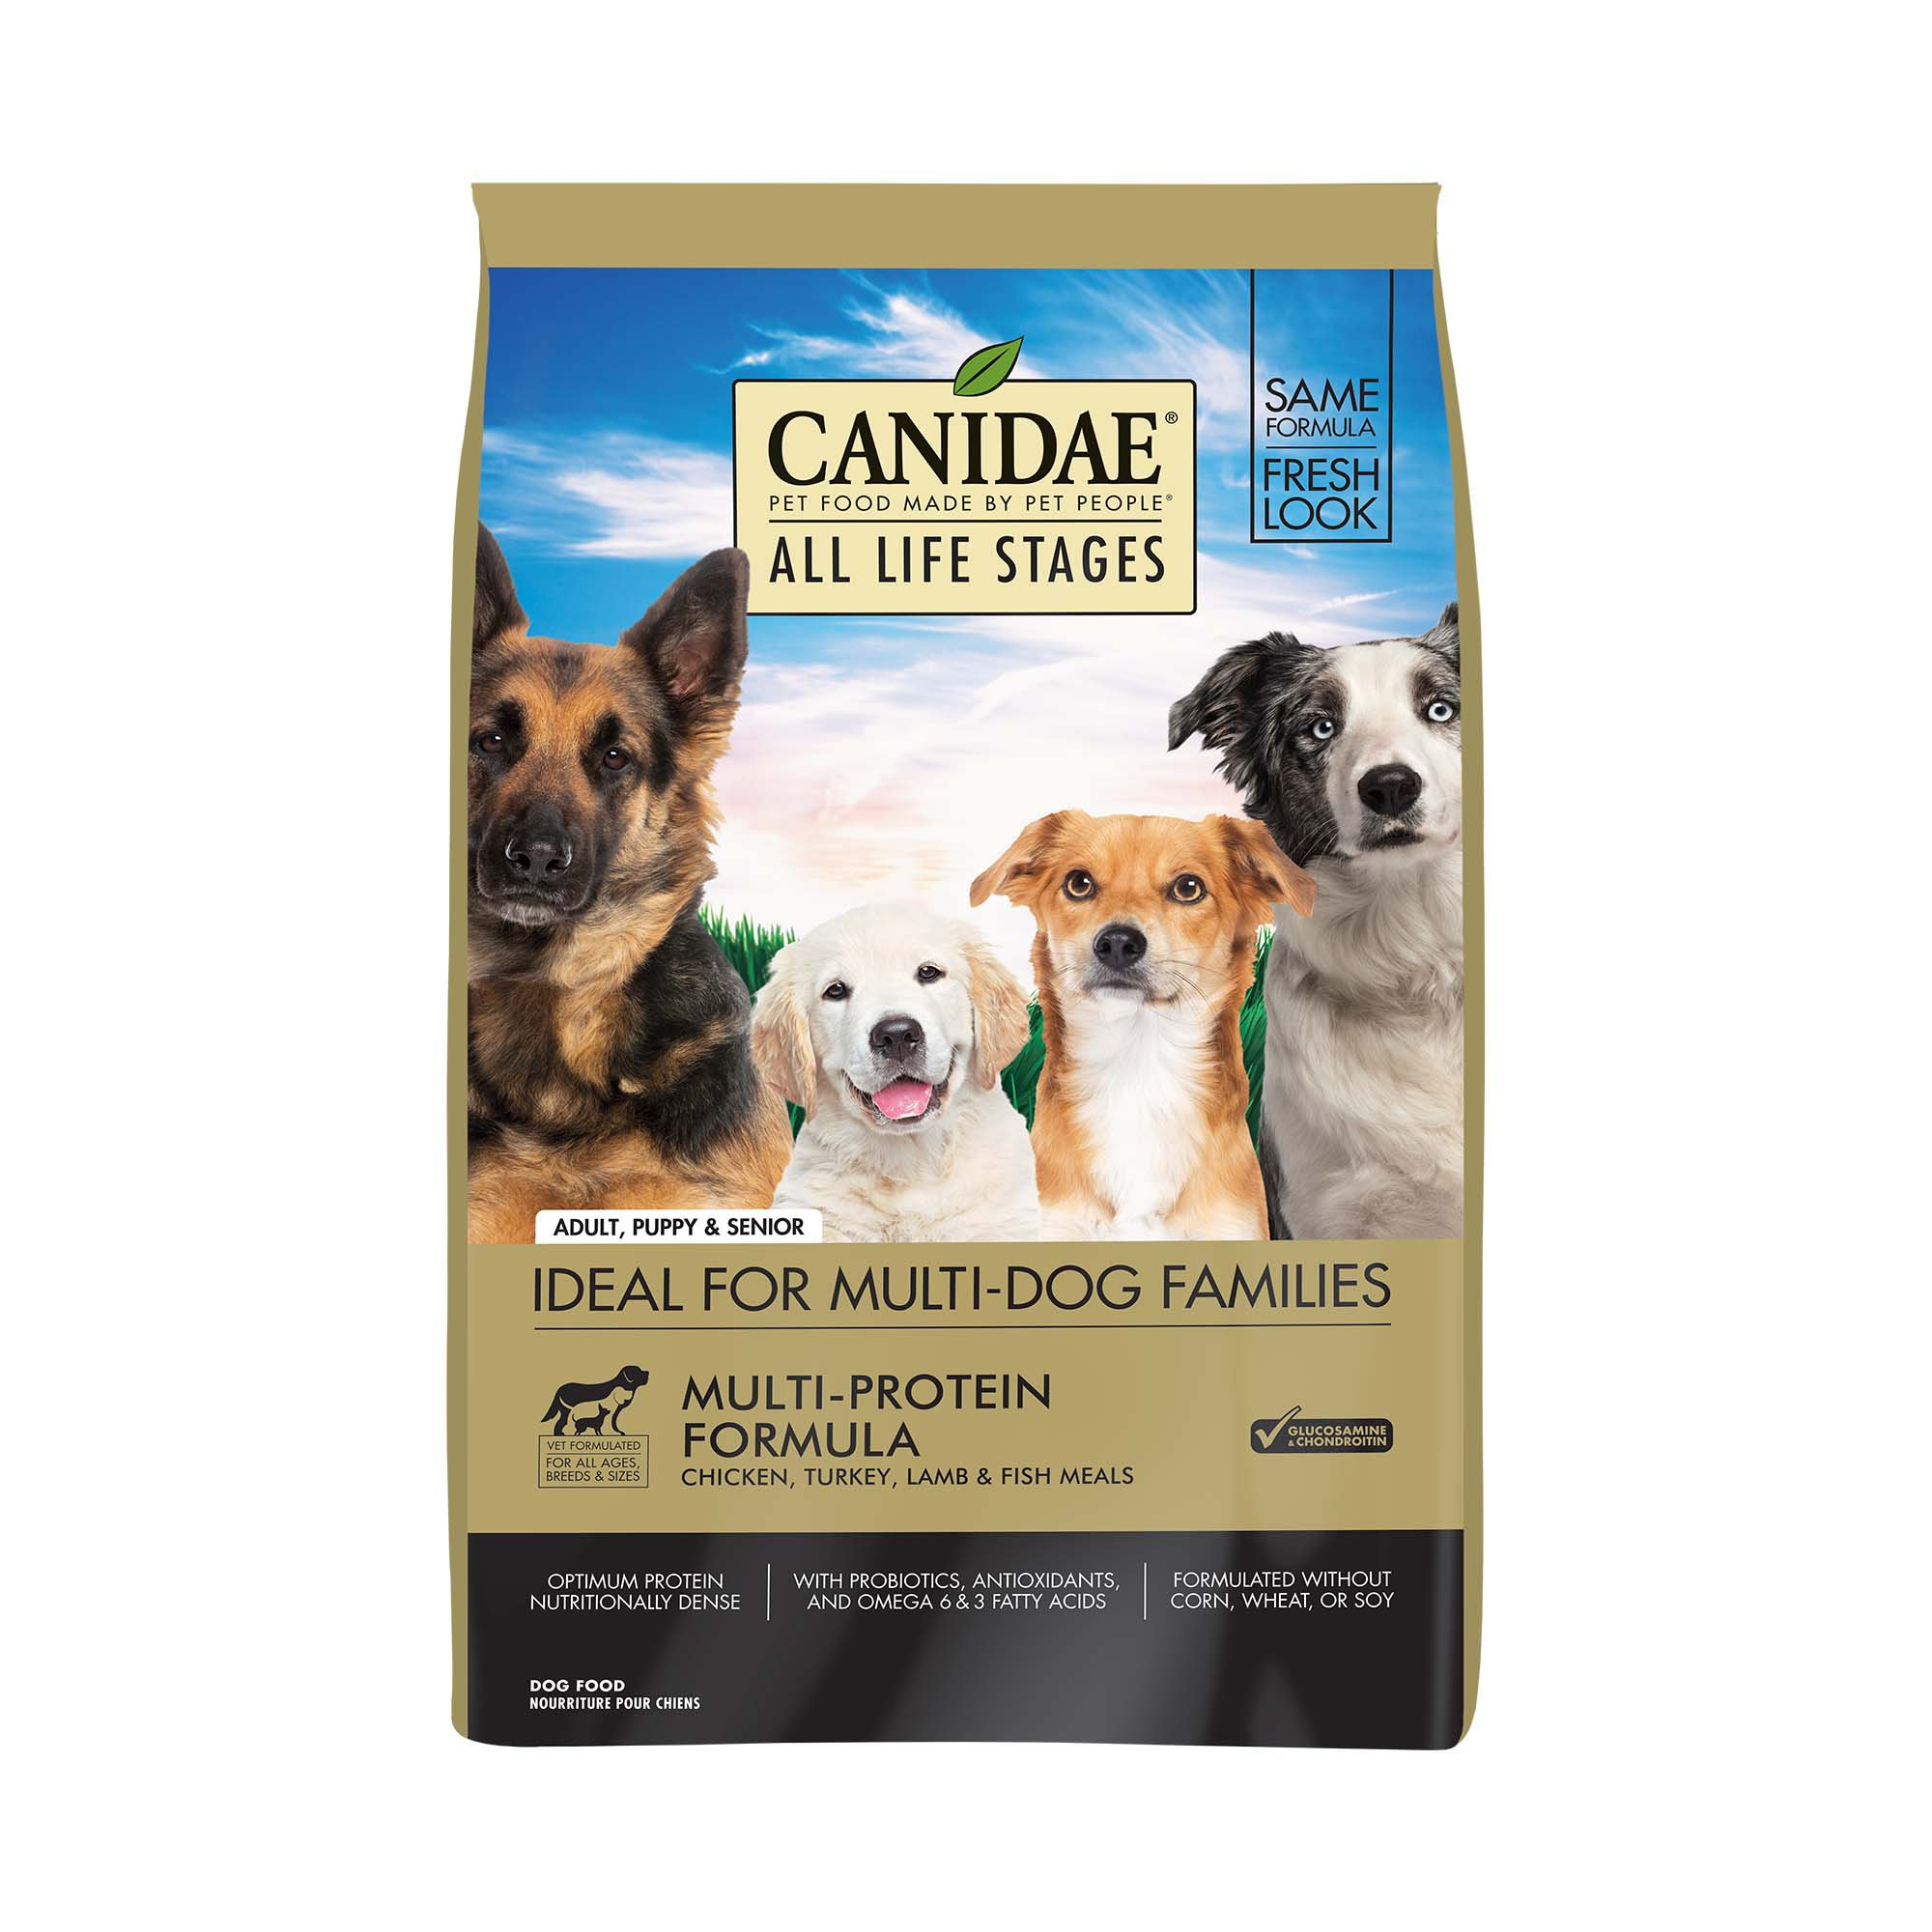 CANIDAE All Life Stages Chicken, Turkey, Lamb & Fish Meals Formula Dry Dog Food, 5 lbs.